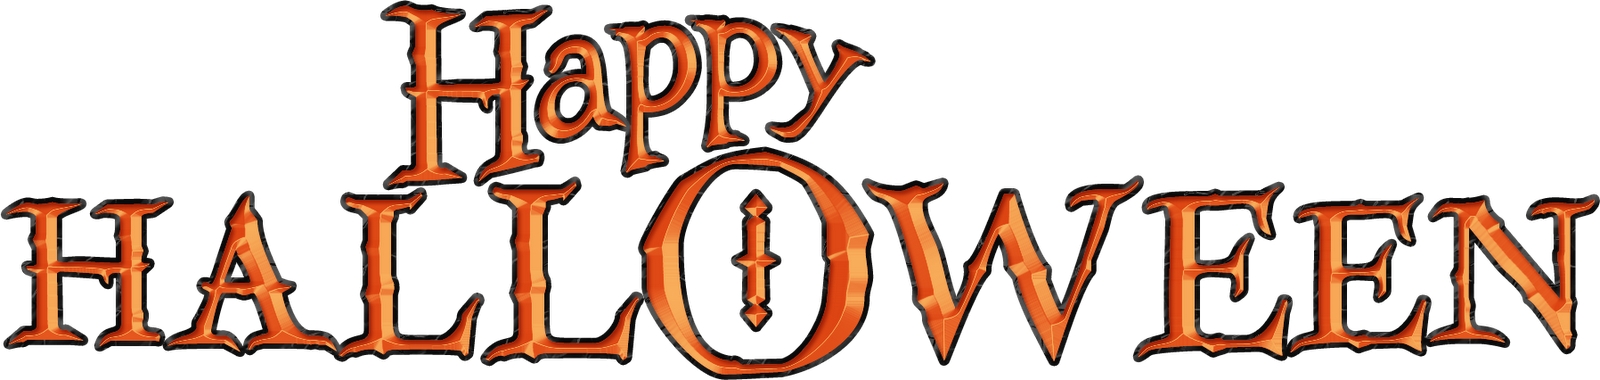 Happy halloween words clipart svg free stock Happy Halloween Word Art – Festival Collections svg free stock